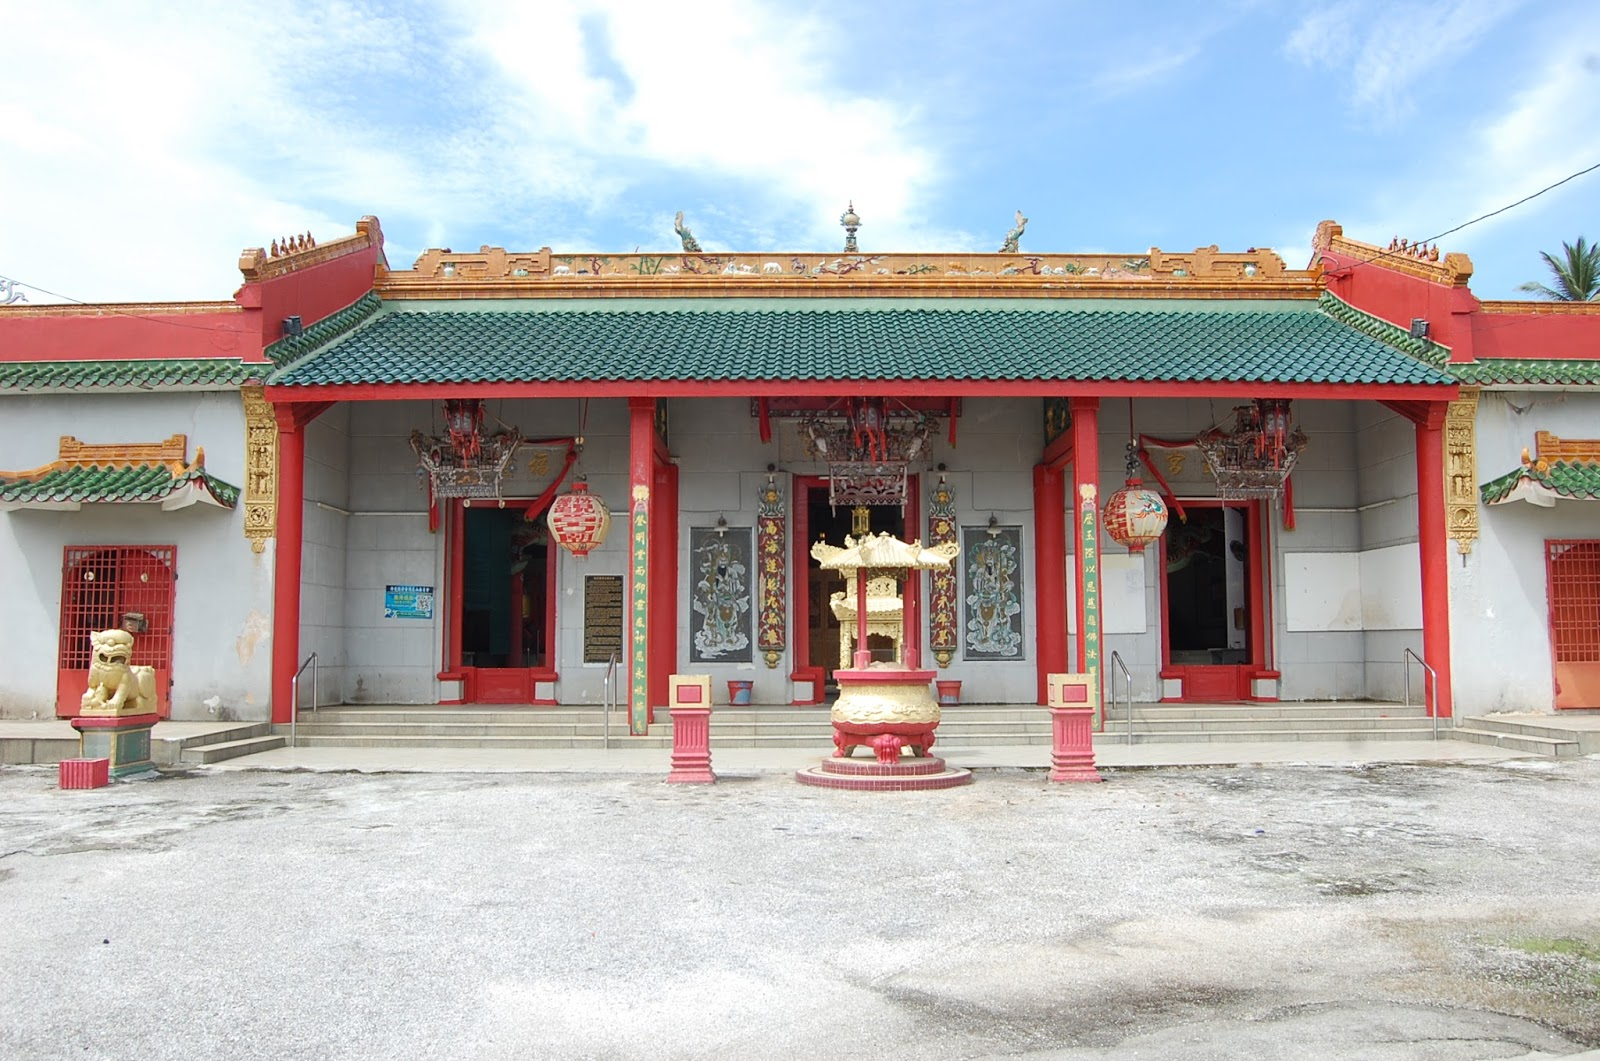 Travel, Community, Charity: GOPENG HERITAGE TRAIL